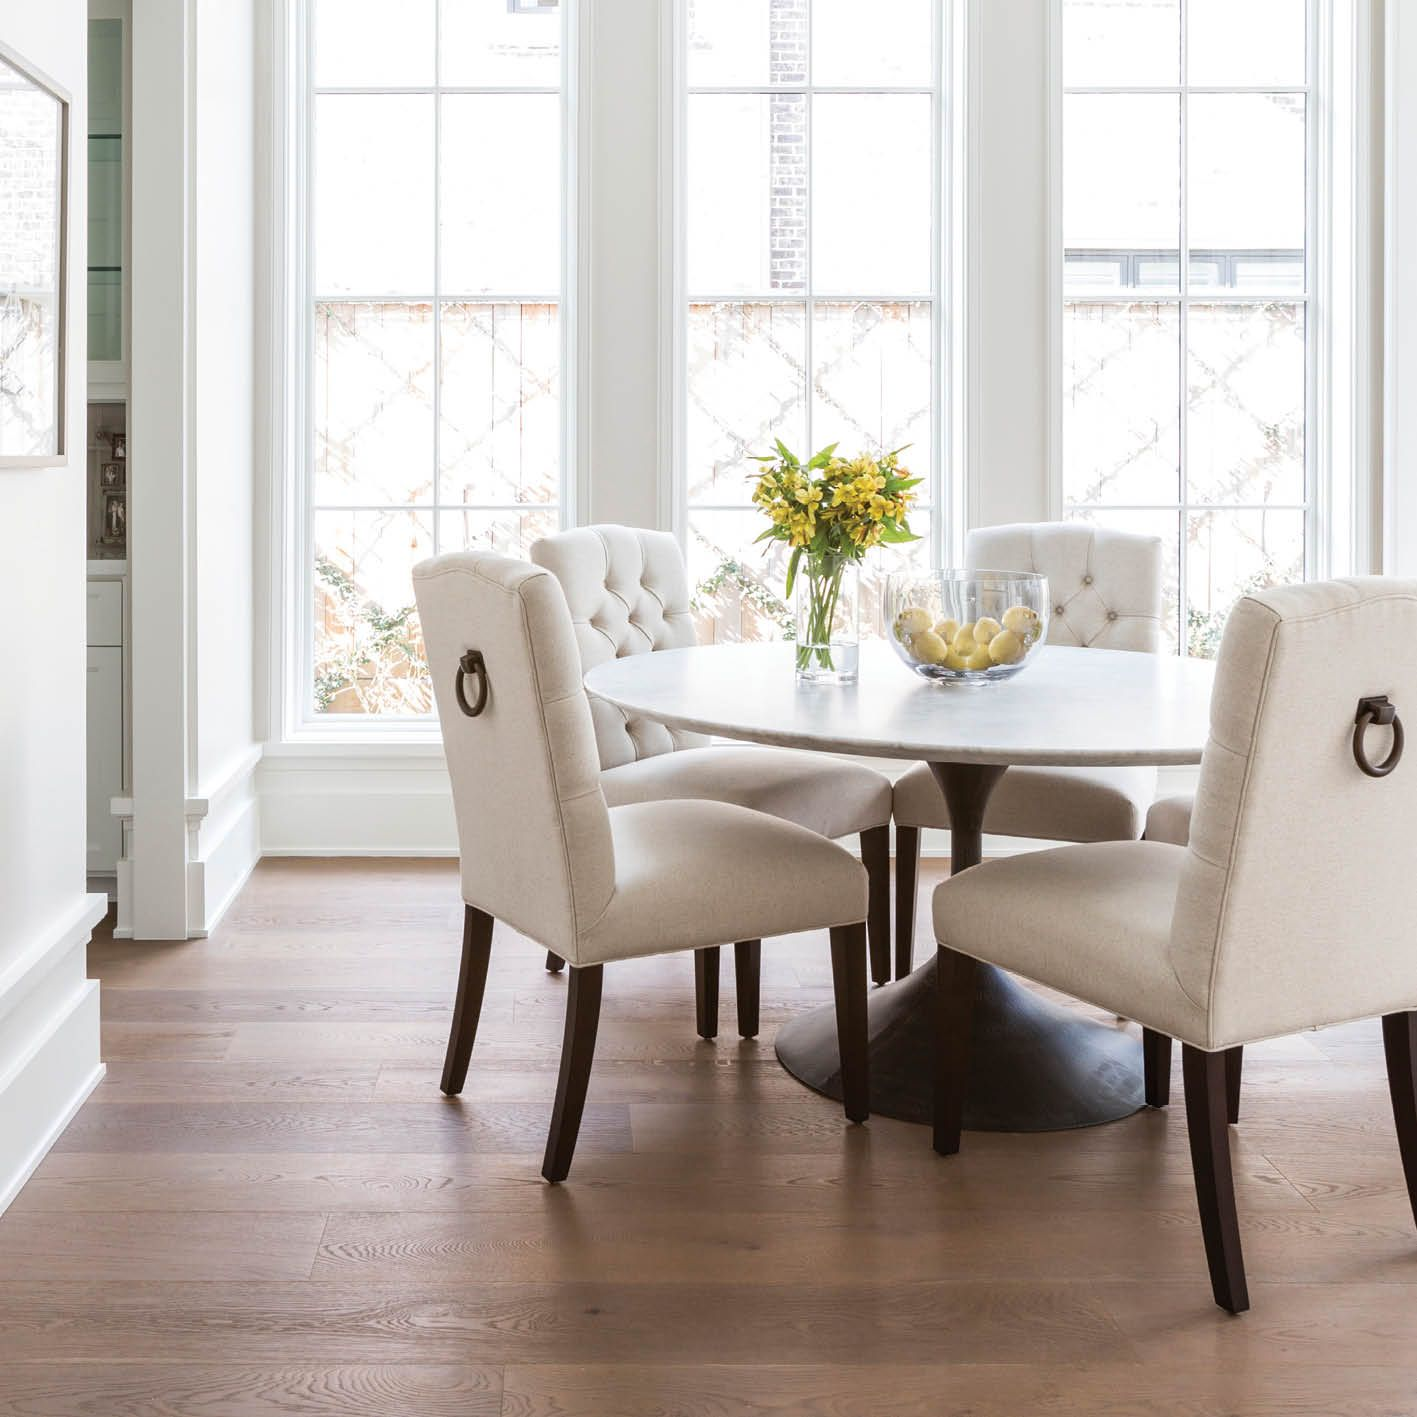 Marie Flanigan Interiors Citybook Guiding Light Bright Breakfast - Restoration hardware marble dining table